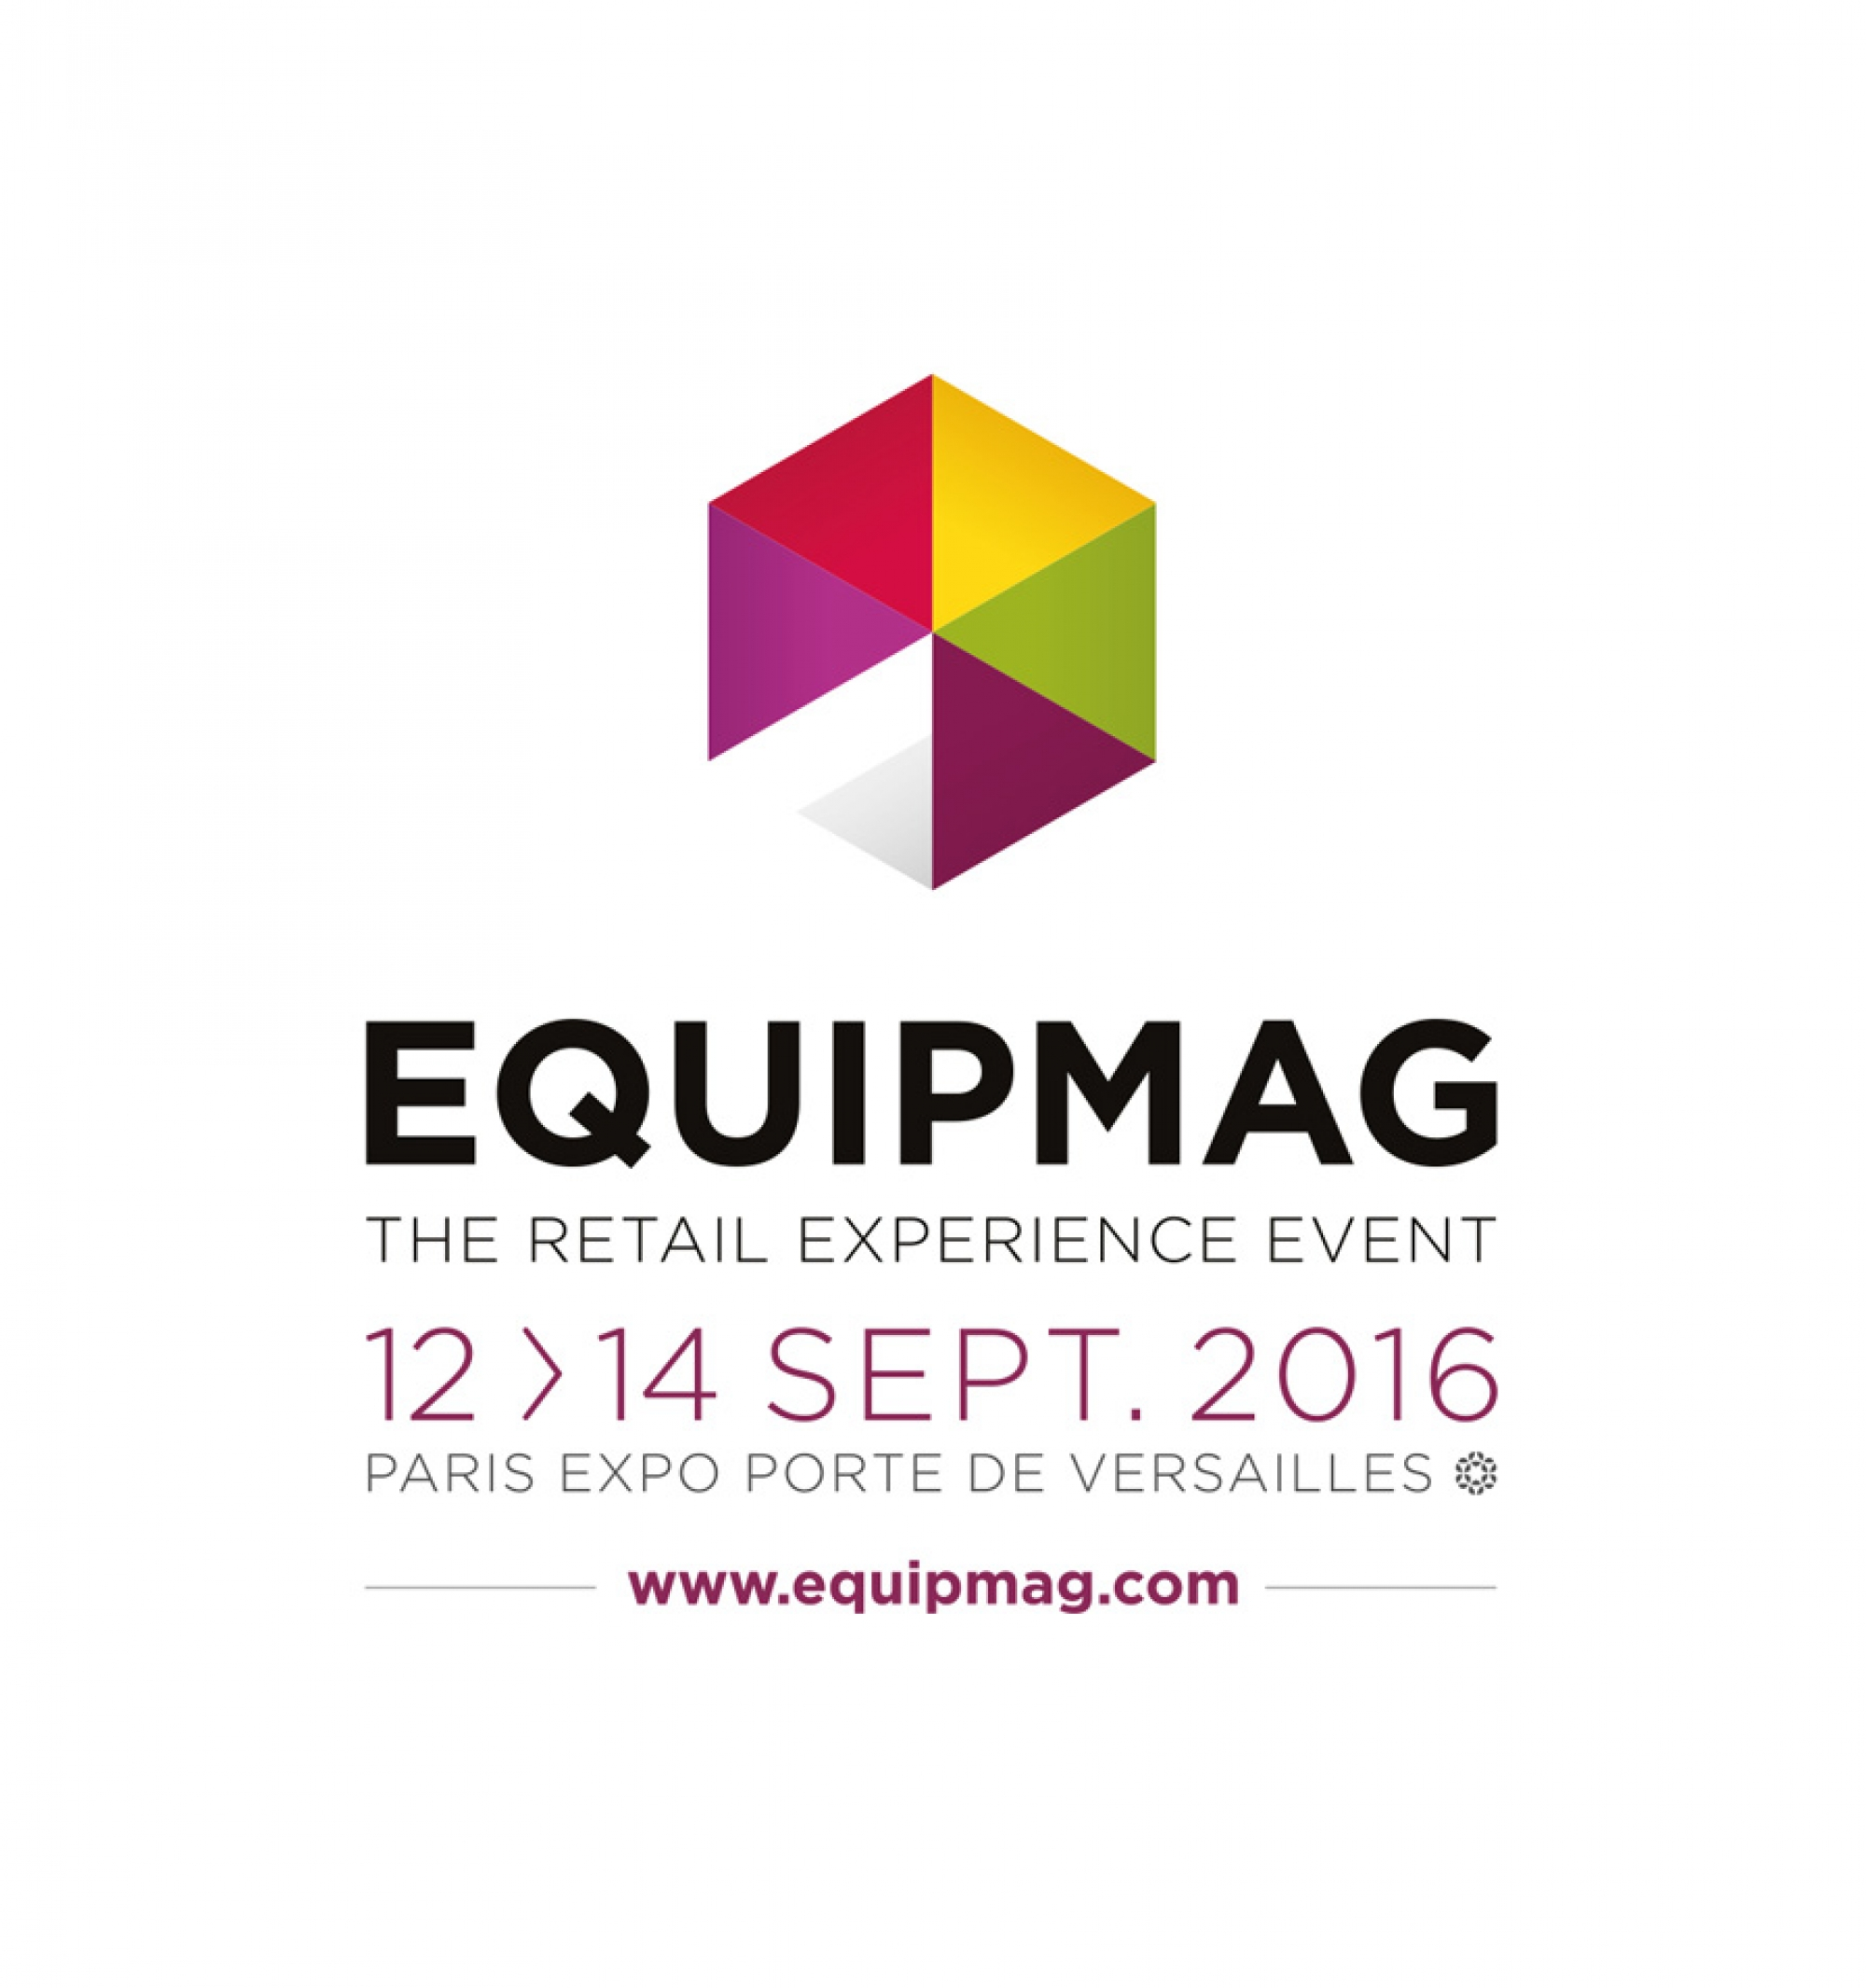 News Flash: RMS to attend EQUIPMAG 2016, 12-14 September 2016, Paris, France